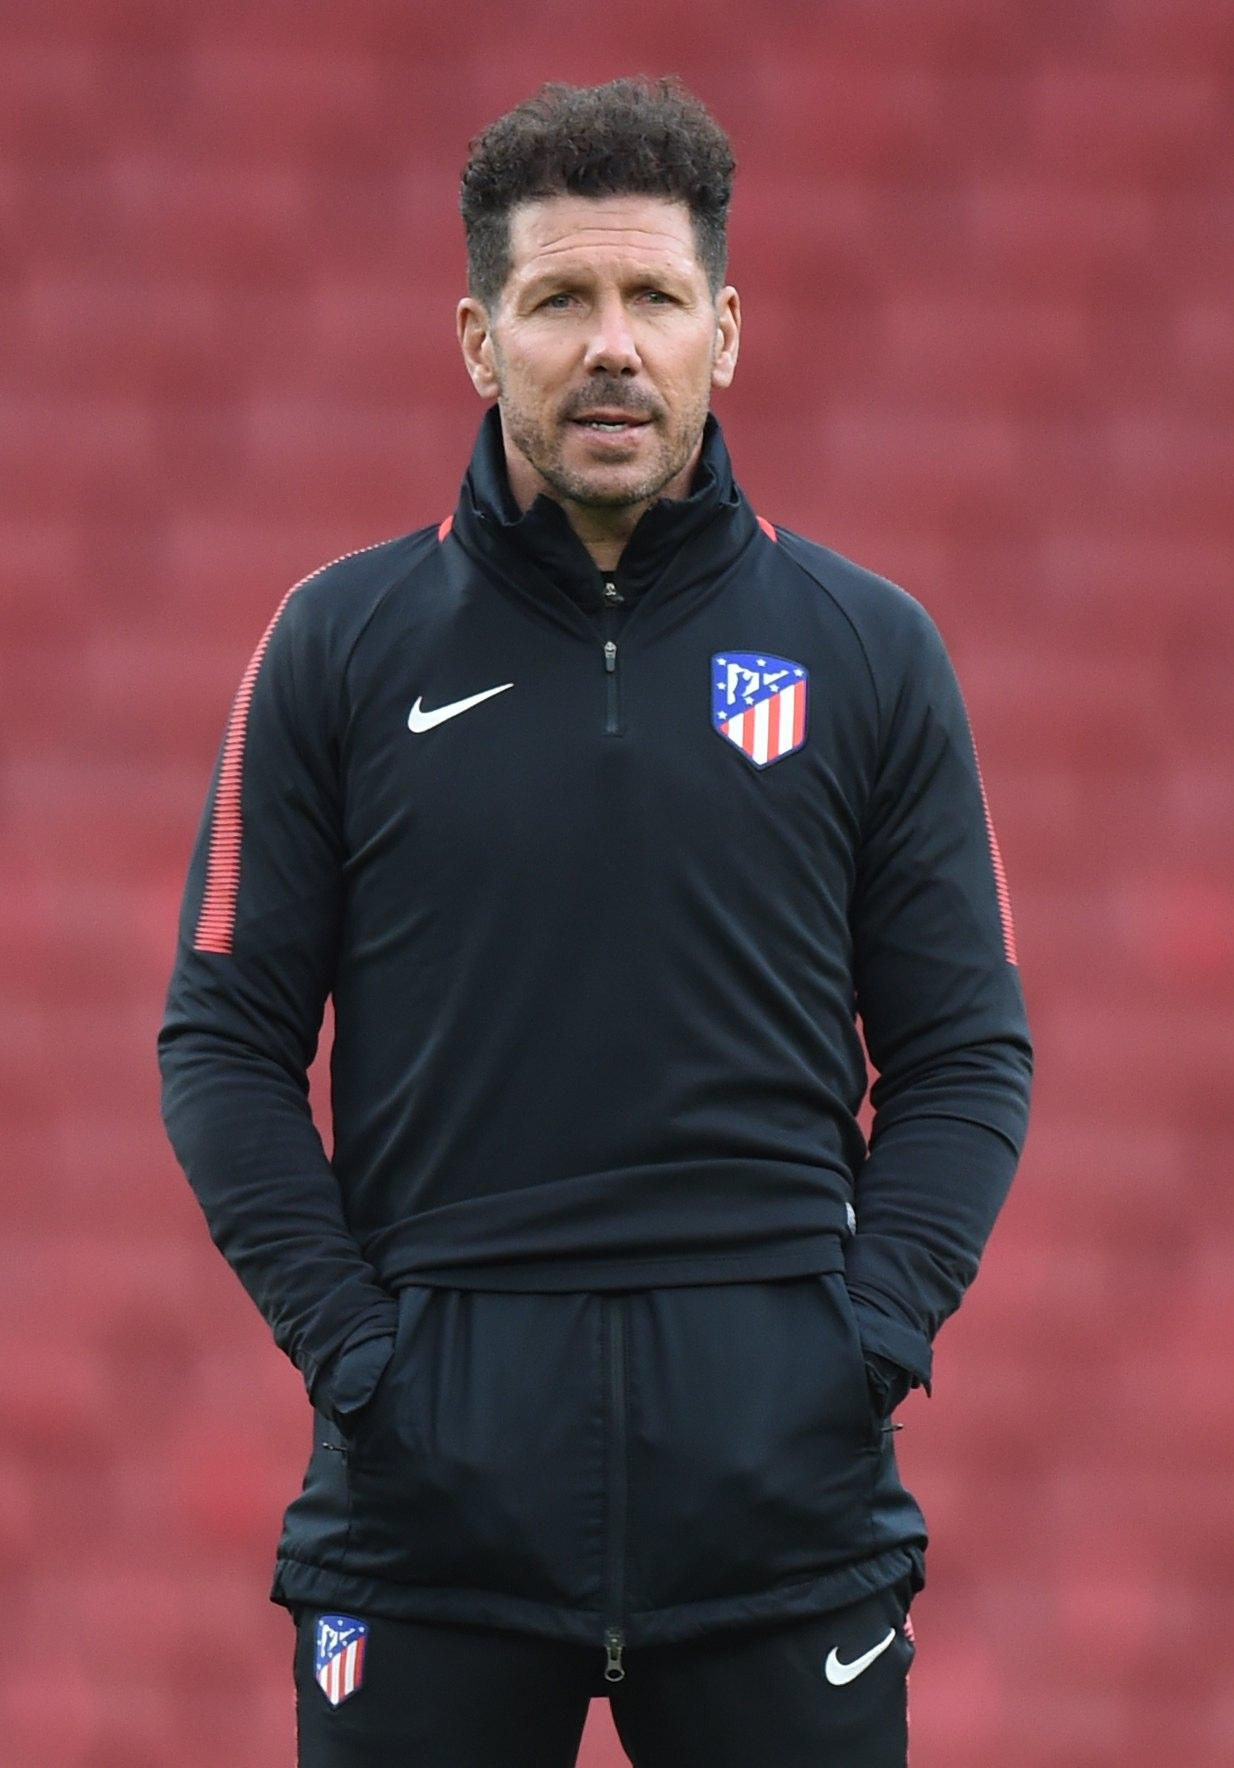 Diego Simeone has revealed he has not spoken with anyone at Arsenal about replacing Arsene Wenger